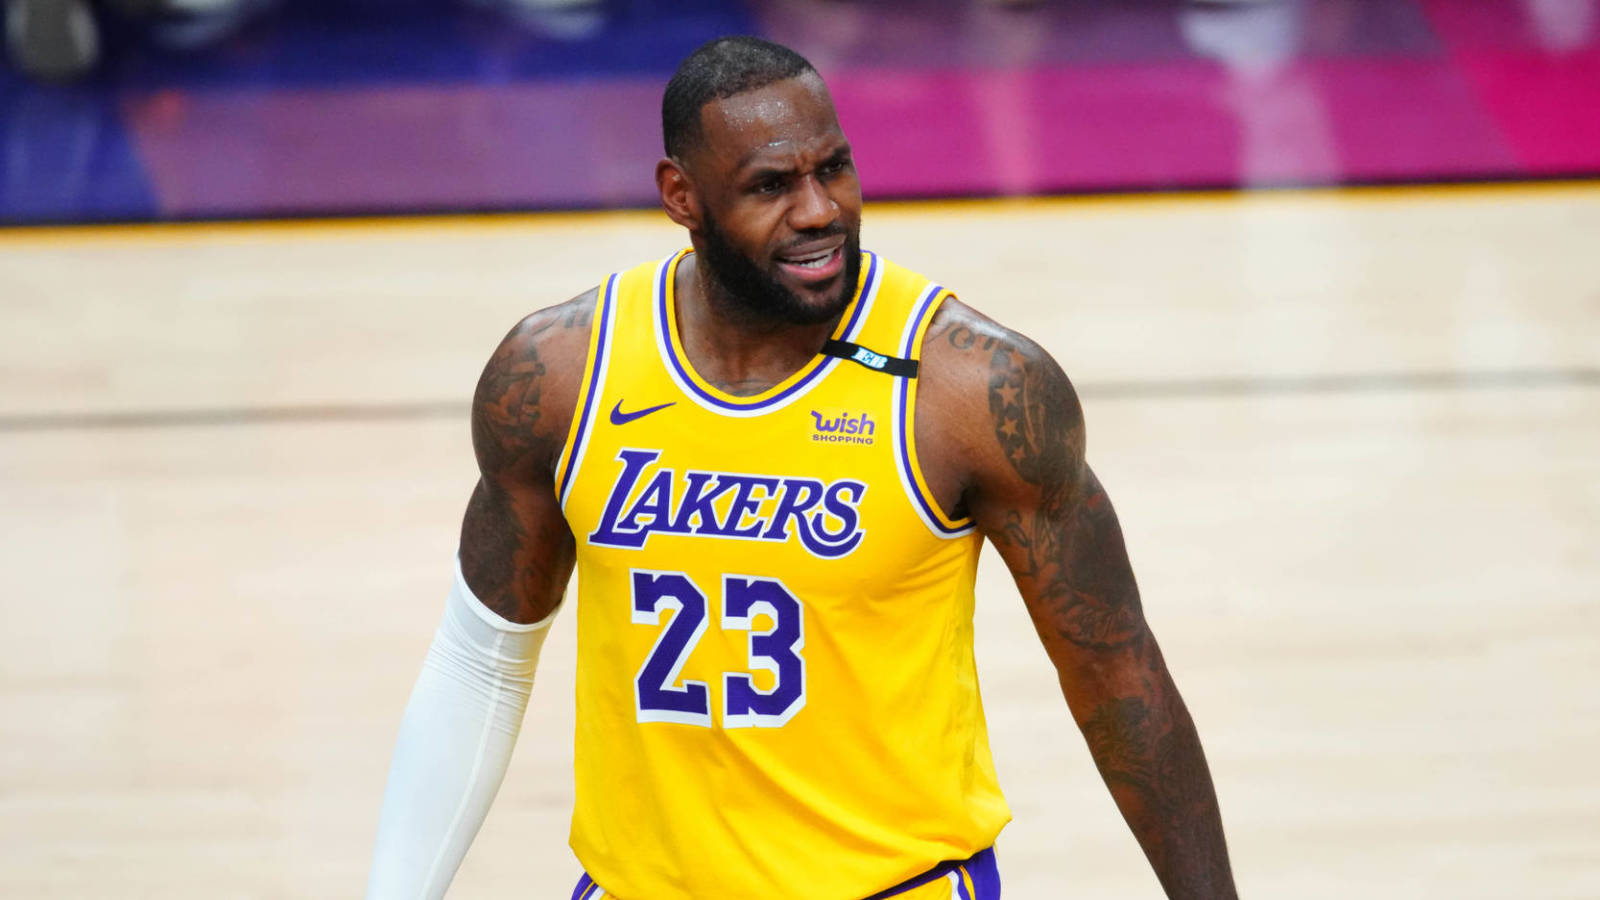 LeBron changes jersey number back to No. 6 next season